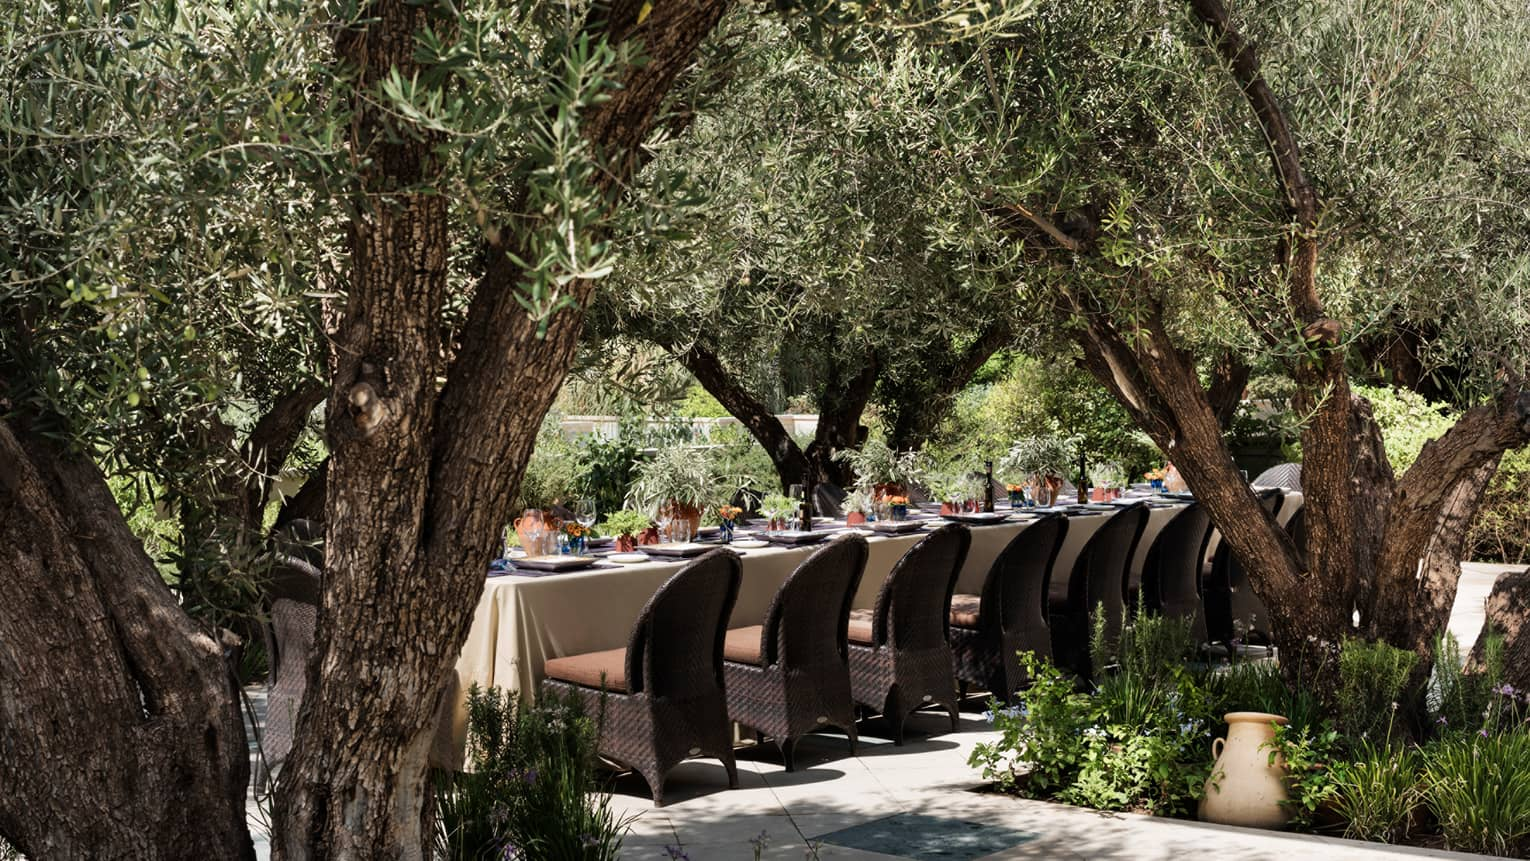 Long outdoor dining table with white tablecloth, chairs under thick trees in garden